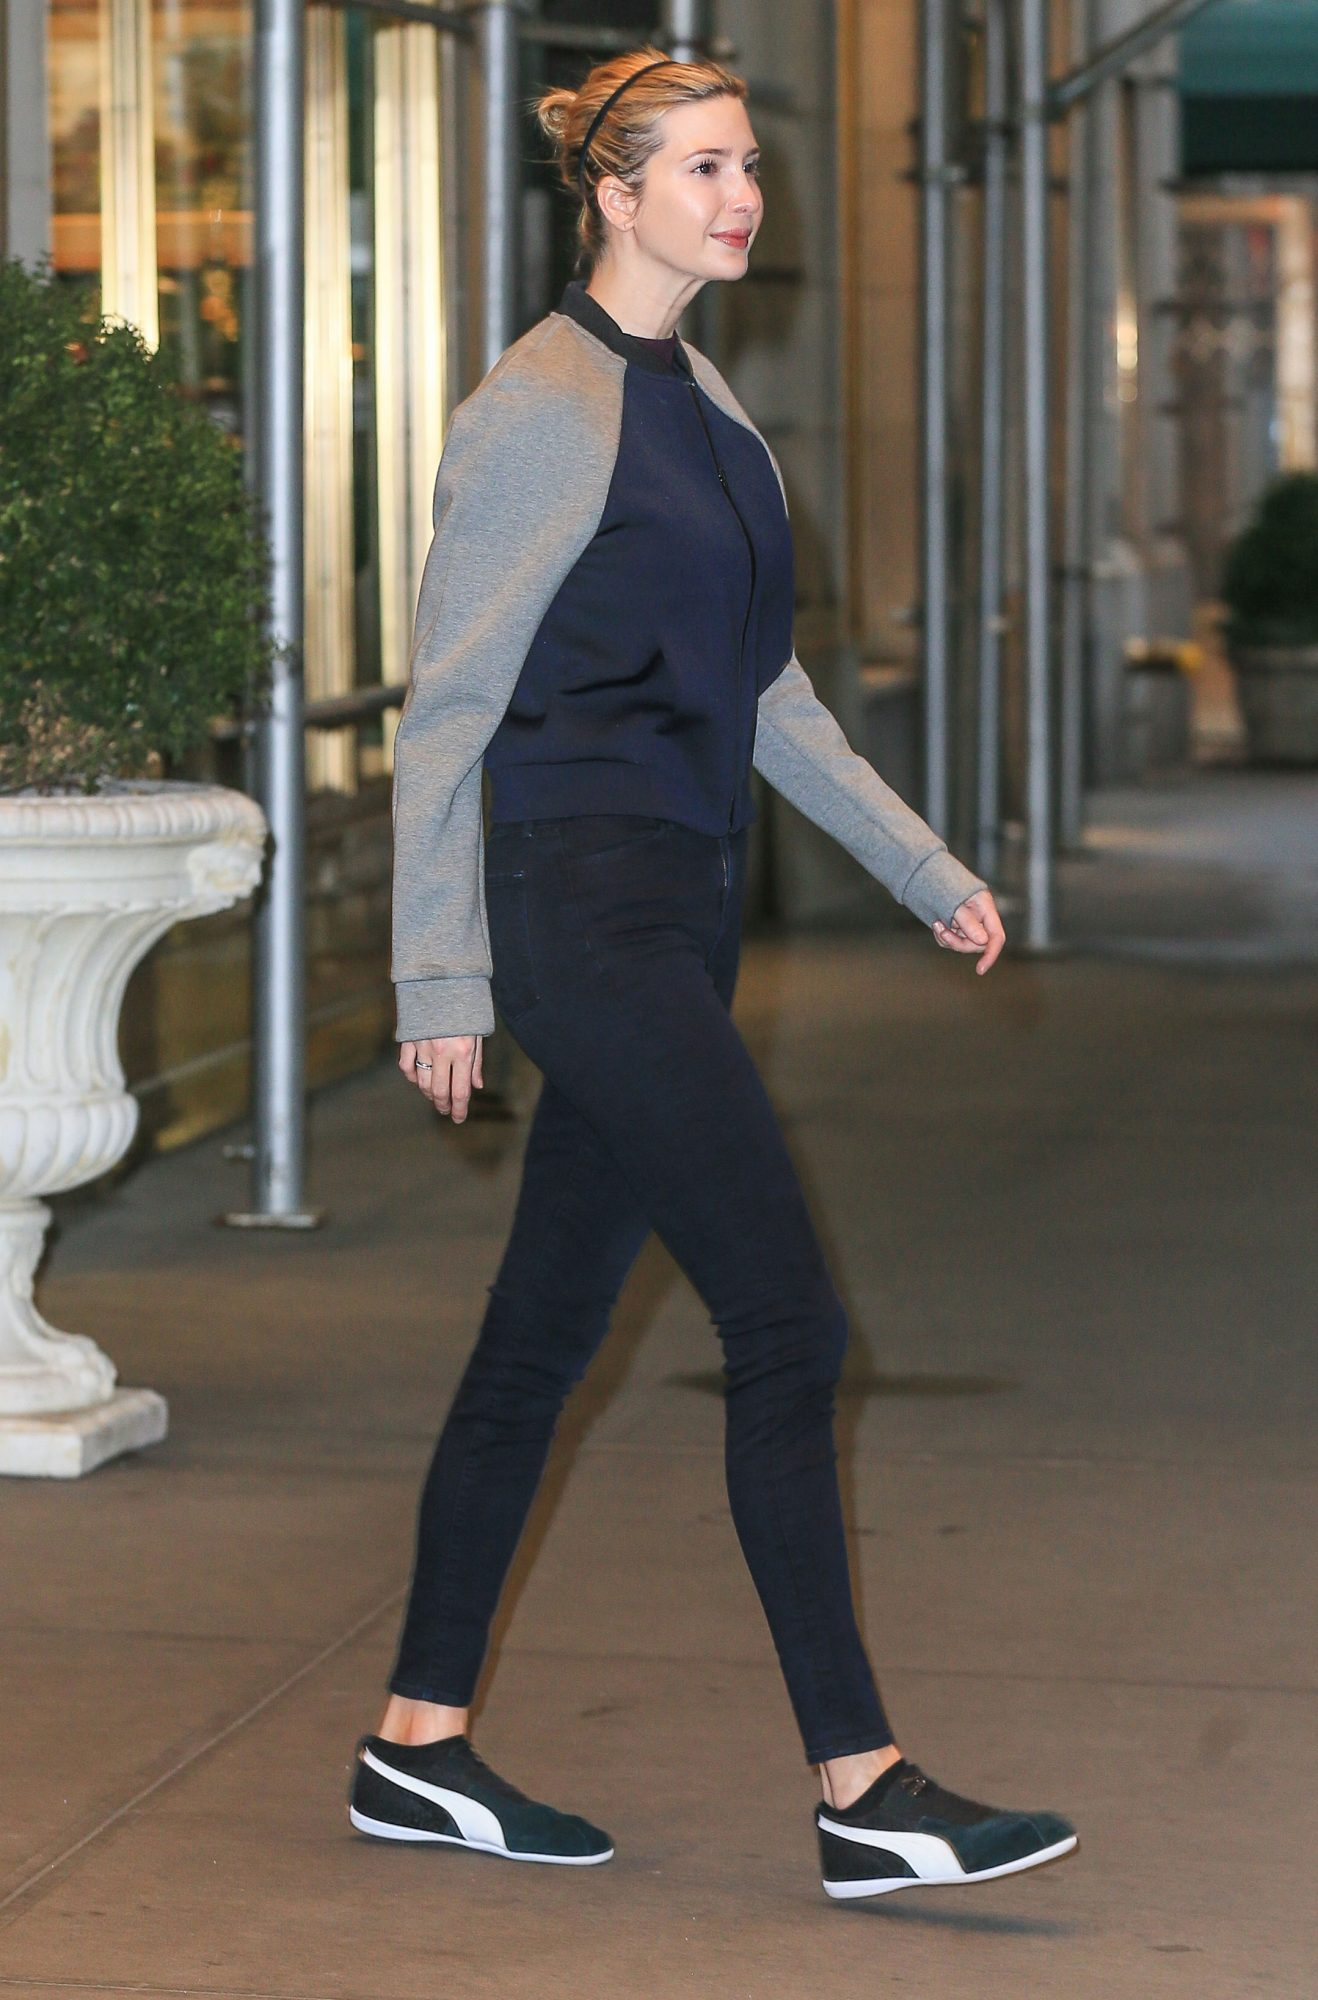 Ivanka Trump Leaves Her Apartment In Gym Clothes